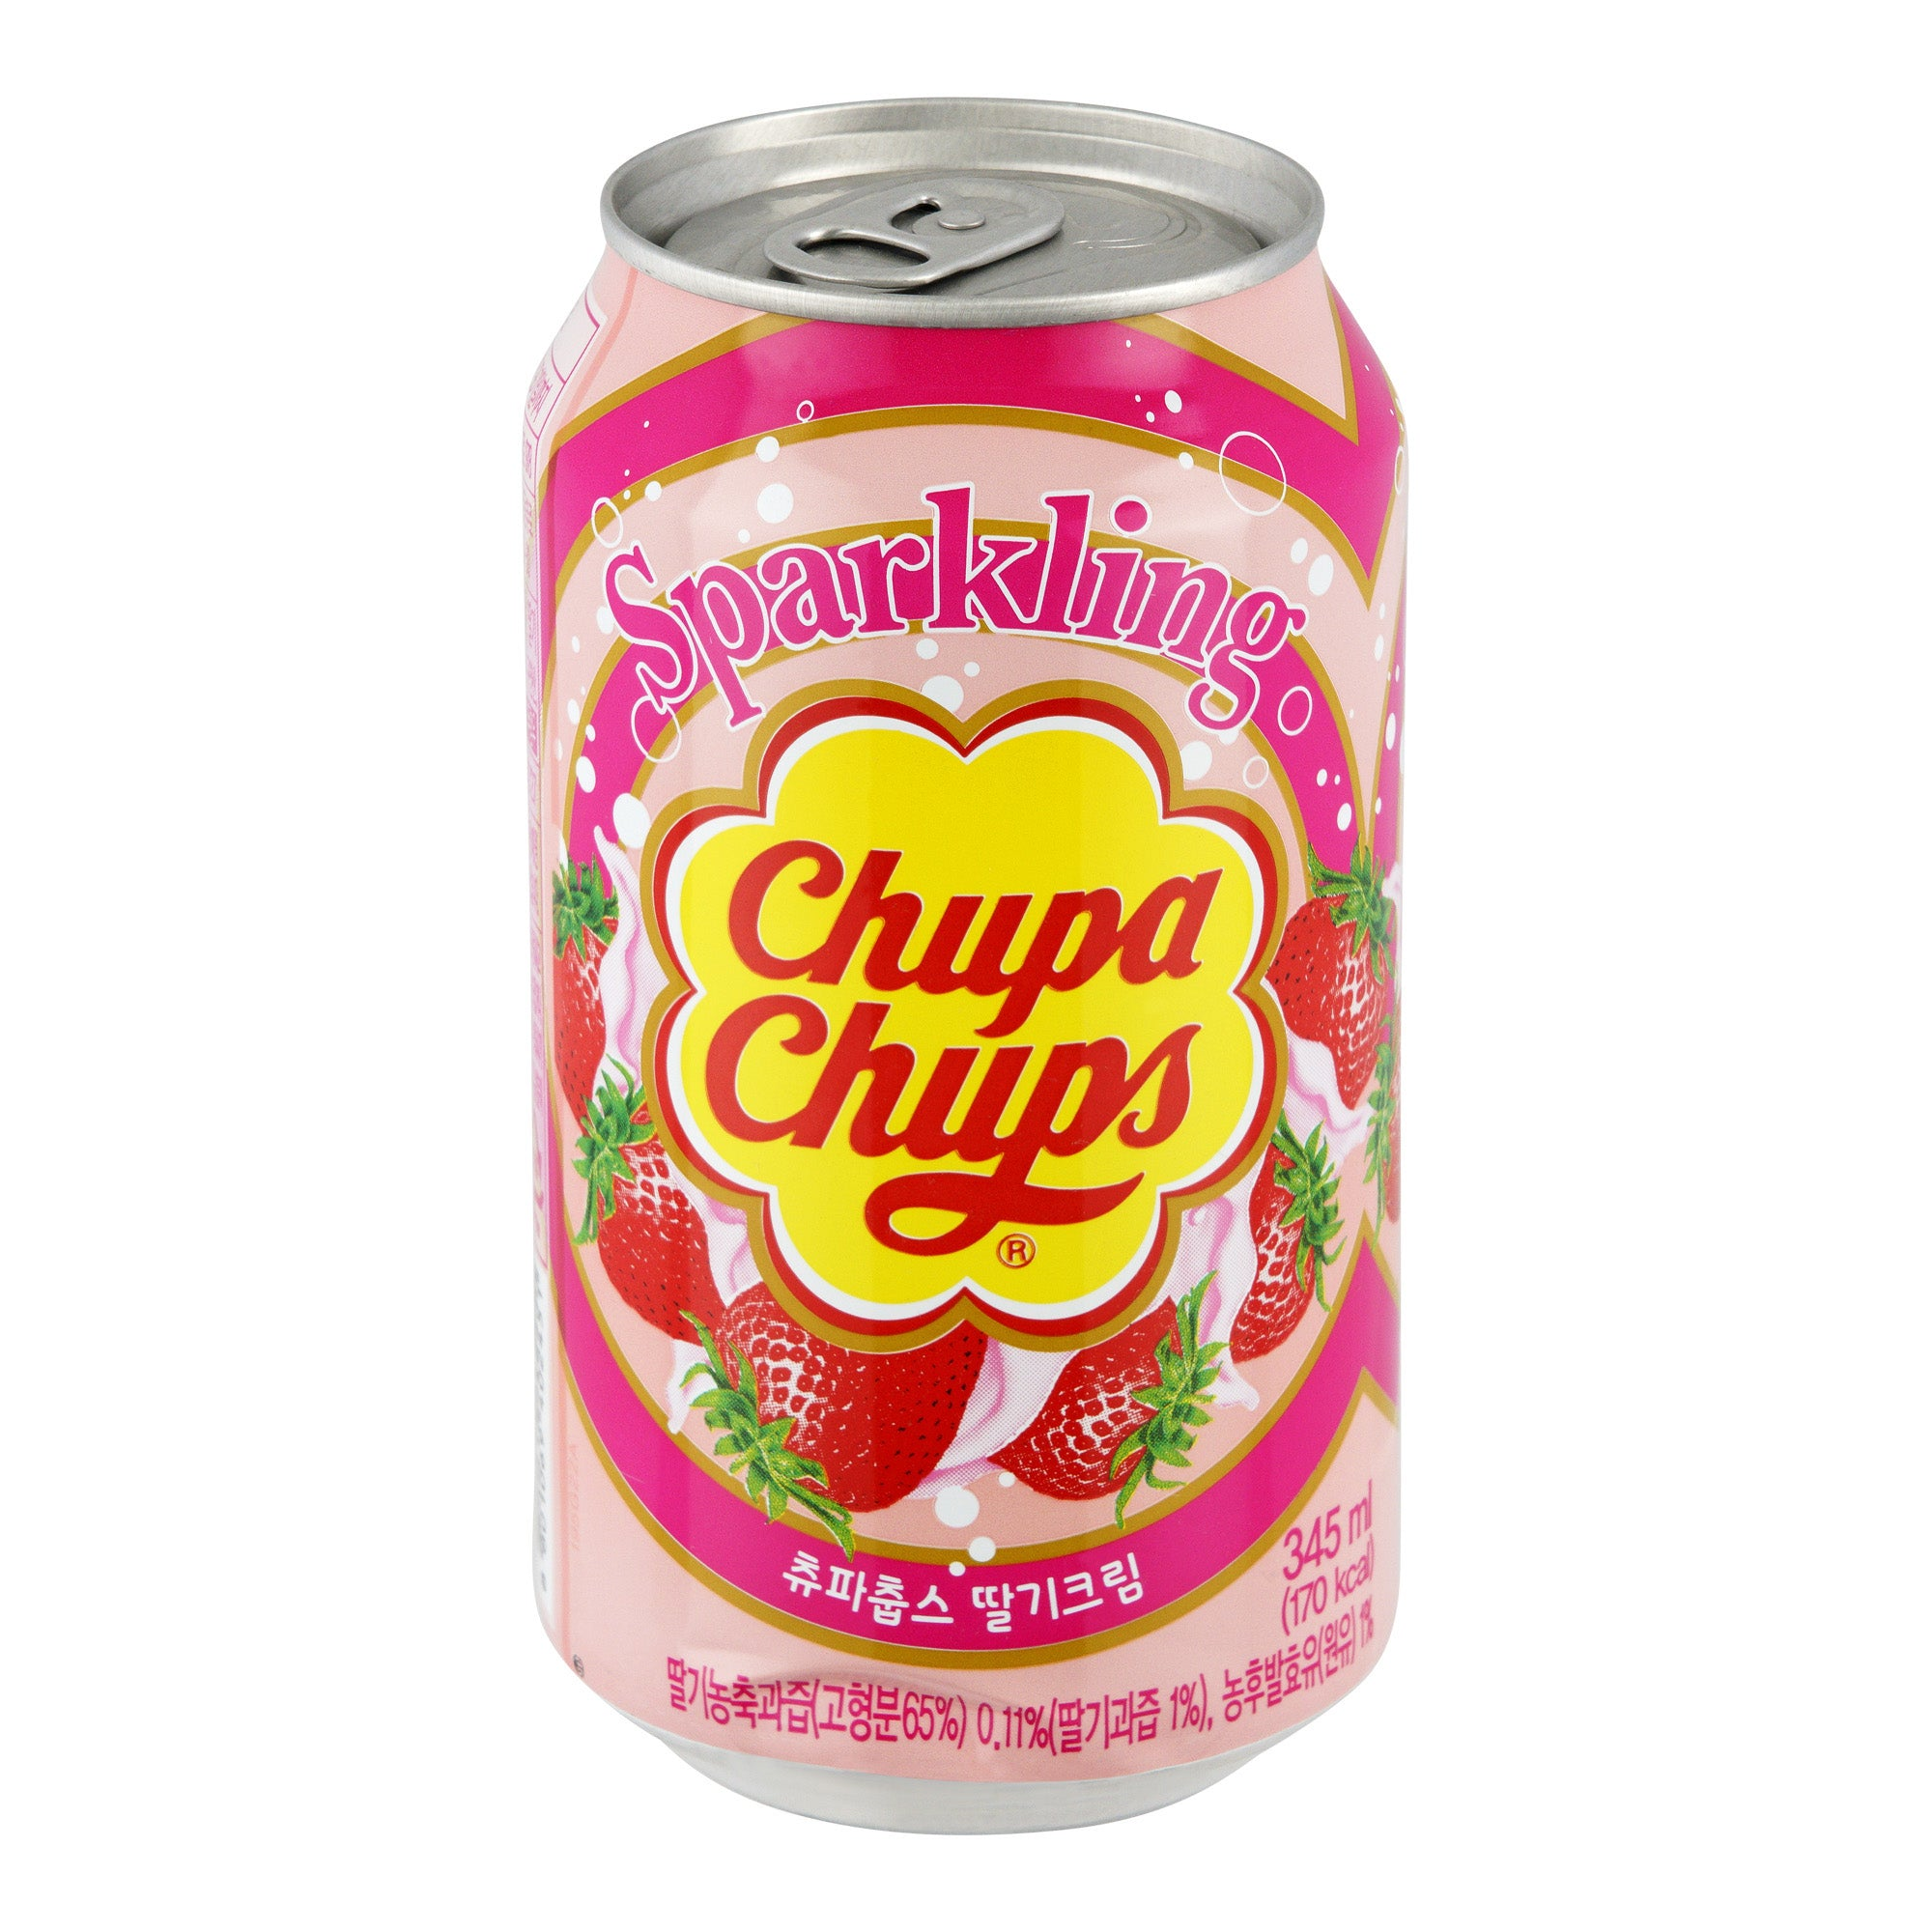 Chupa Chups Strawberry Cream Flavour 24x330ml